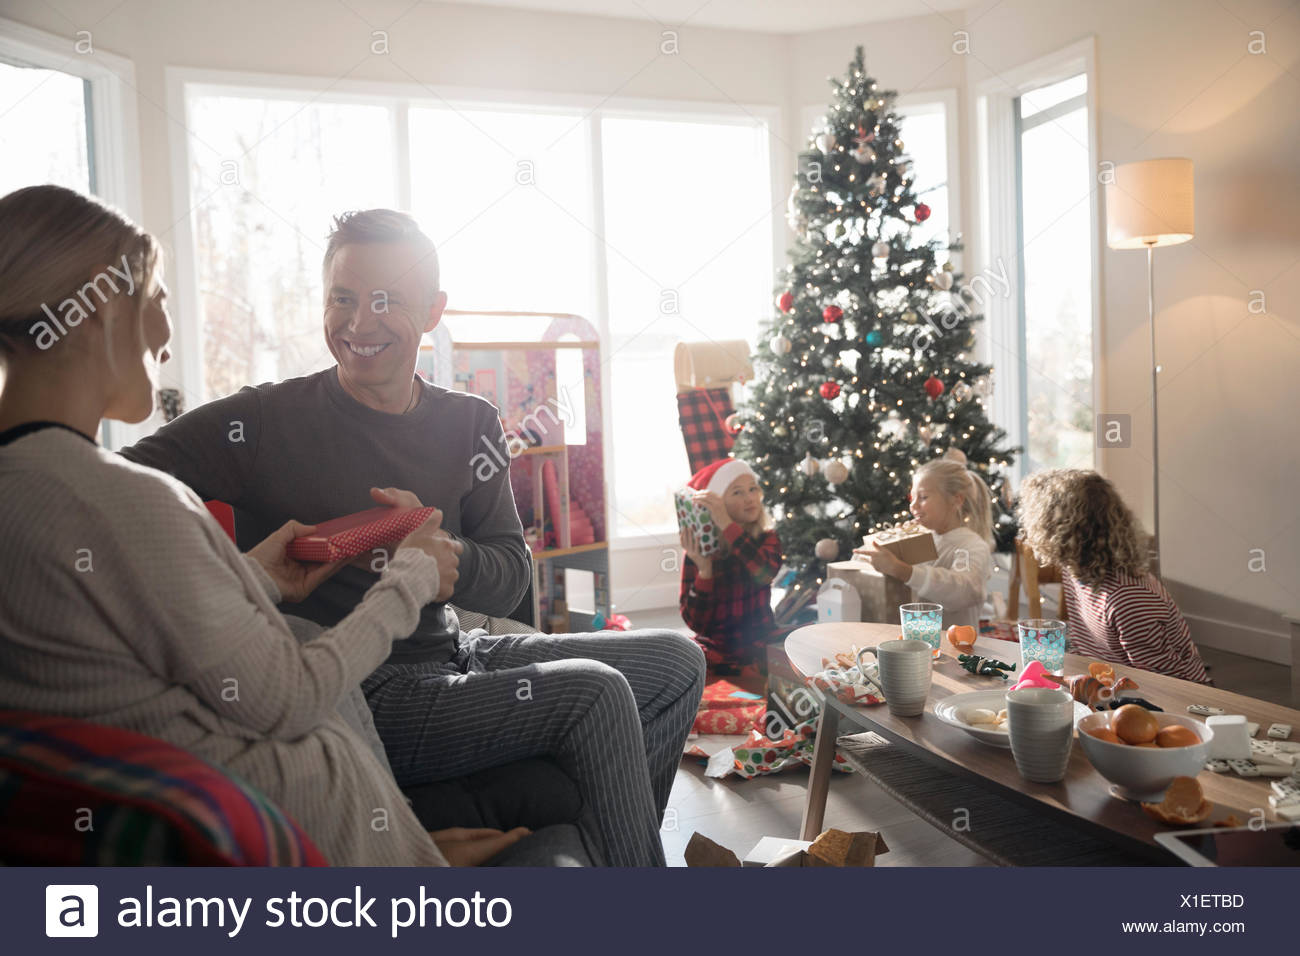 Husband giving Christmas gift to wife in living room with family - Stock Image